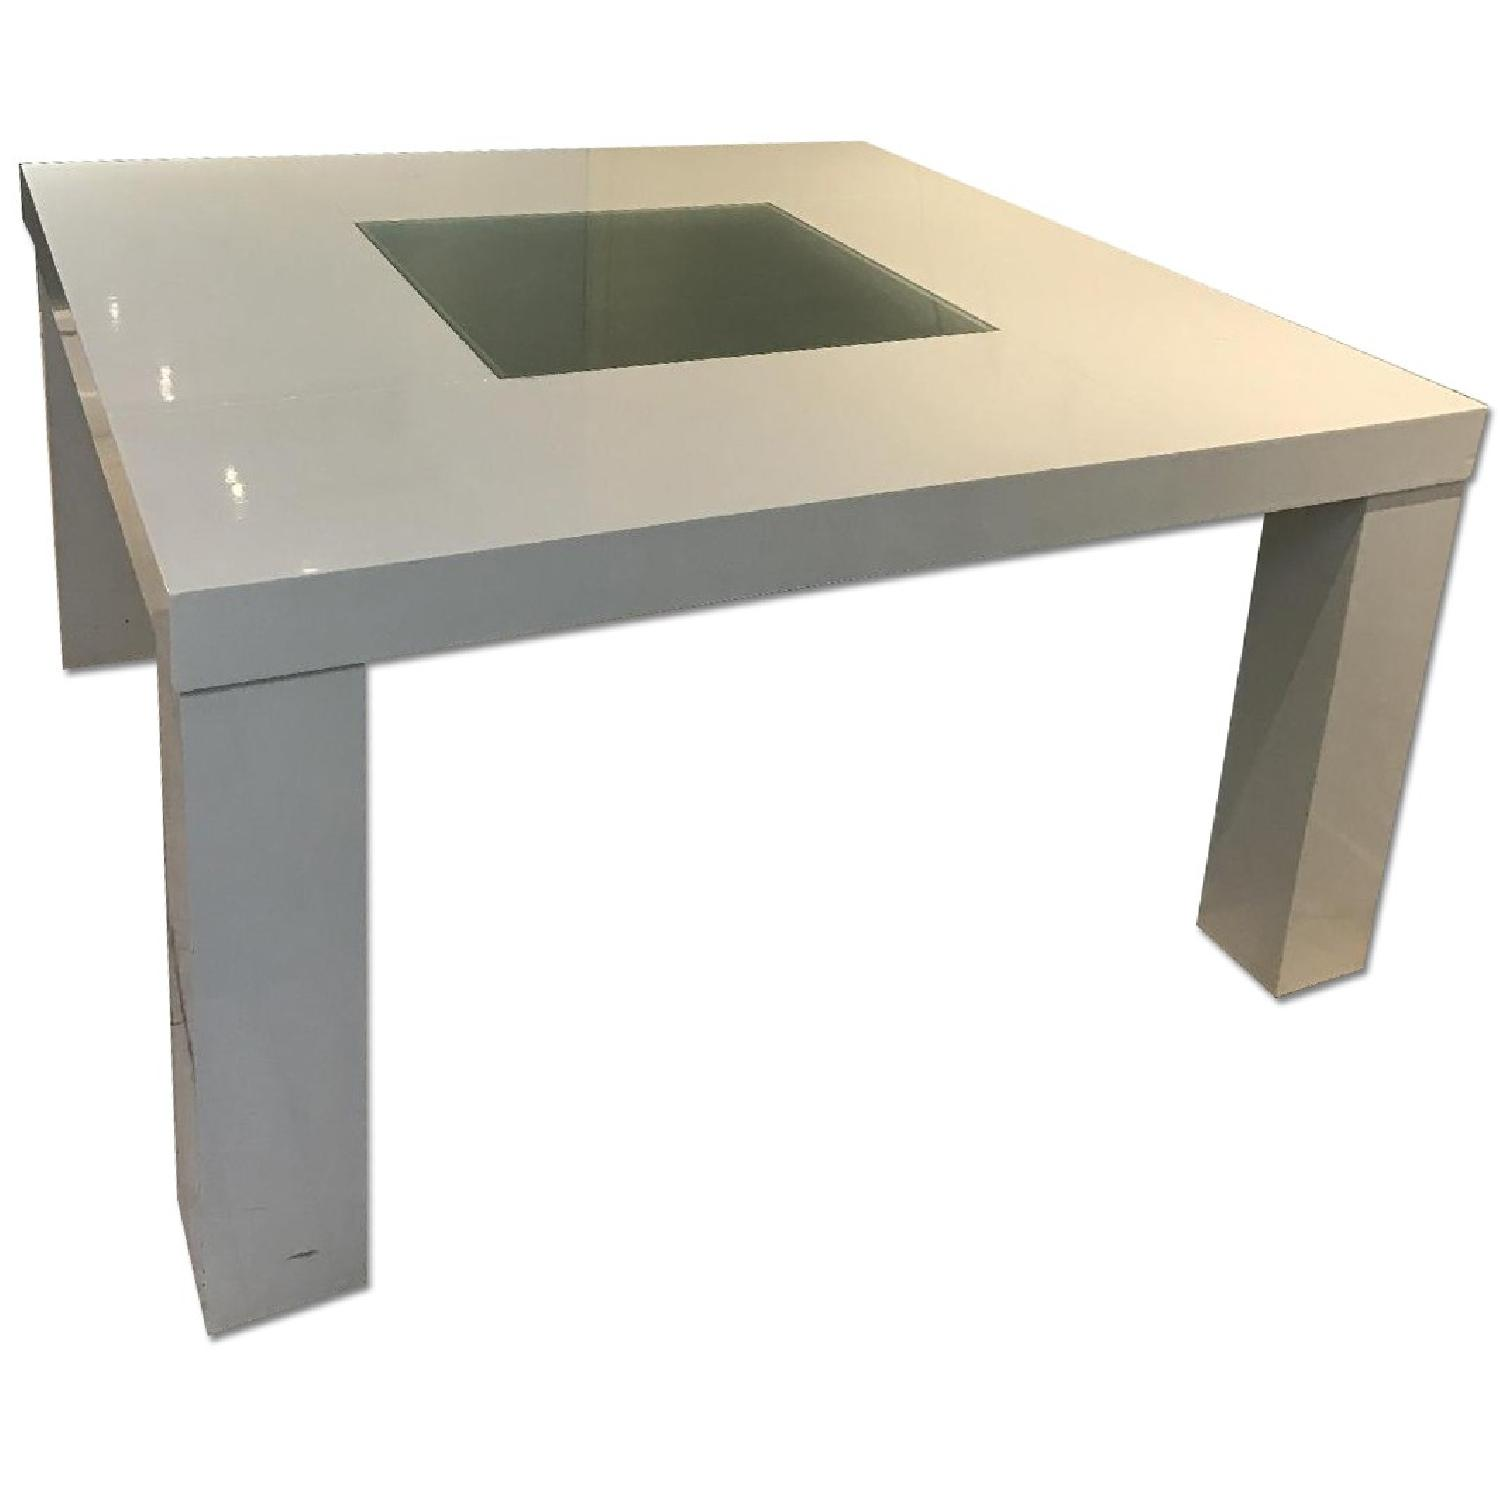 White dining table - Large White Dining Table Office Desk